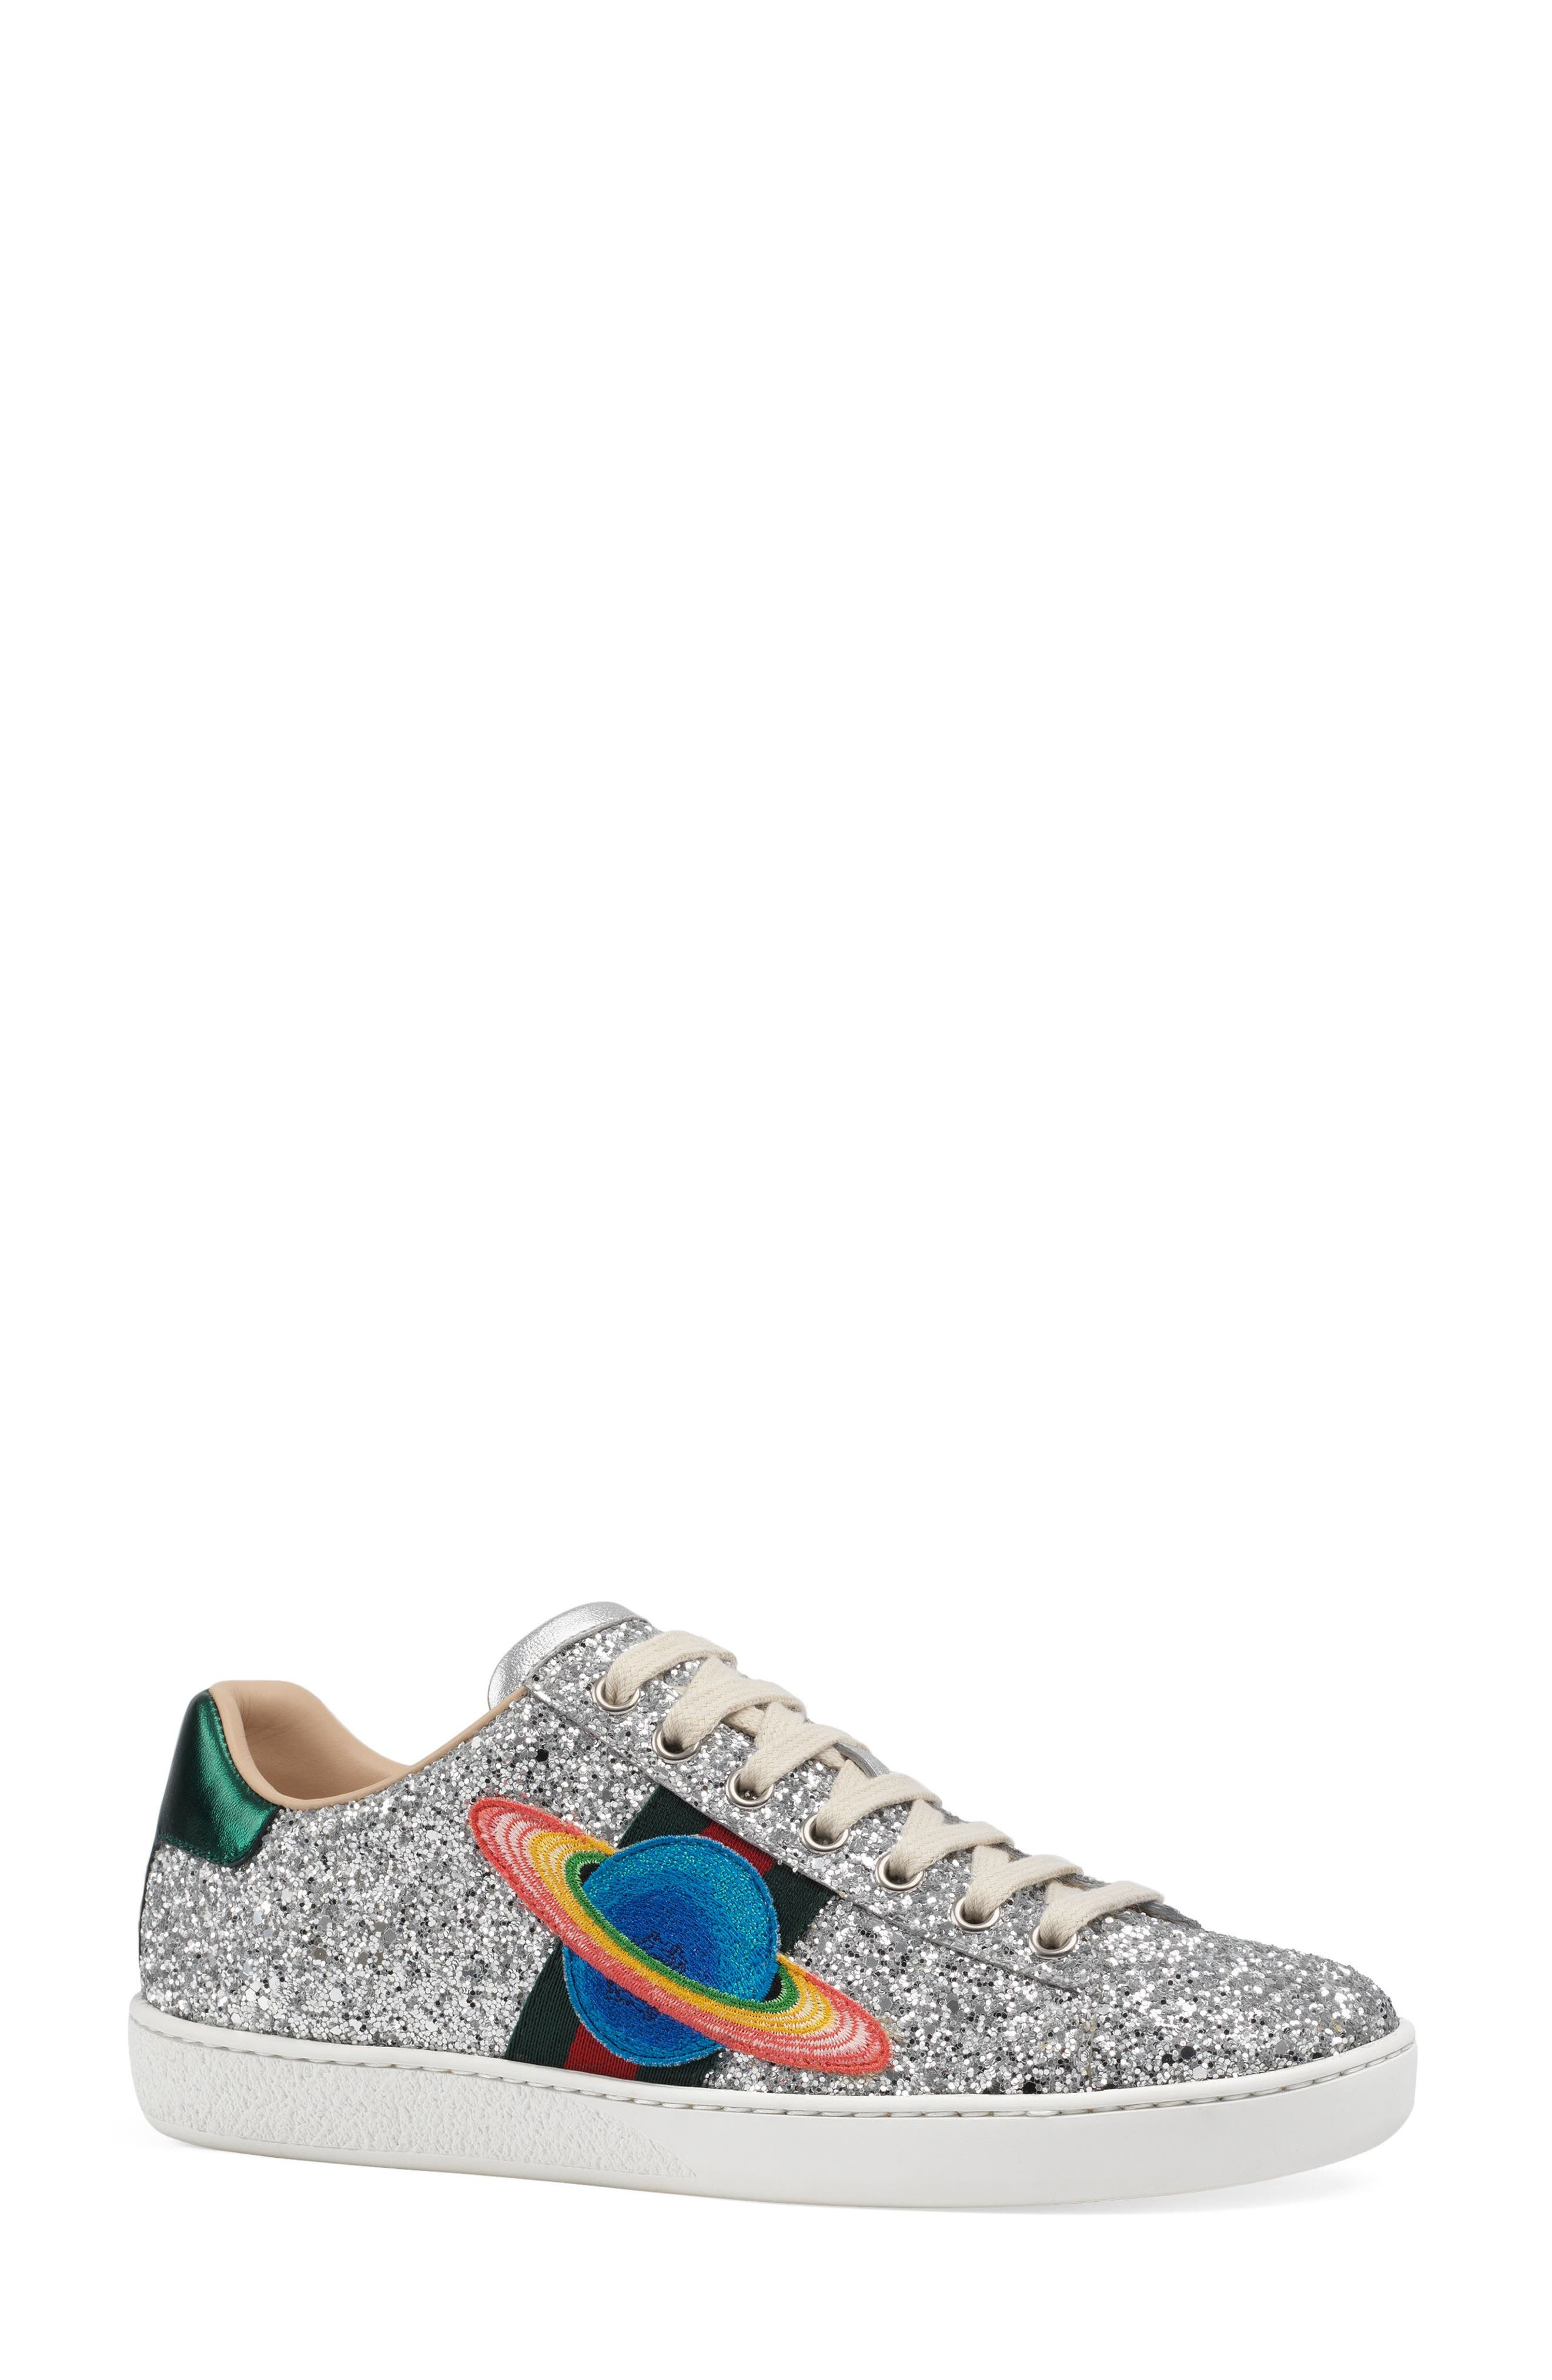 'New Ace' Low Top Sneaker,                             Main thumbnail 1, color,                             041